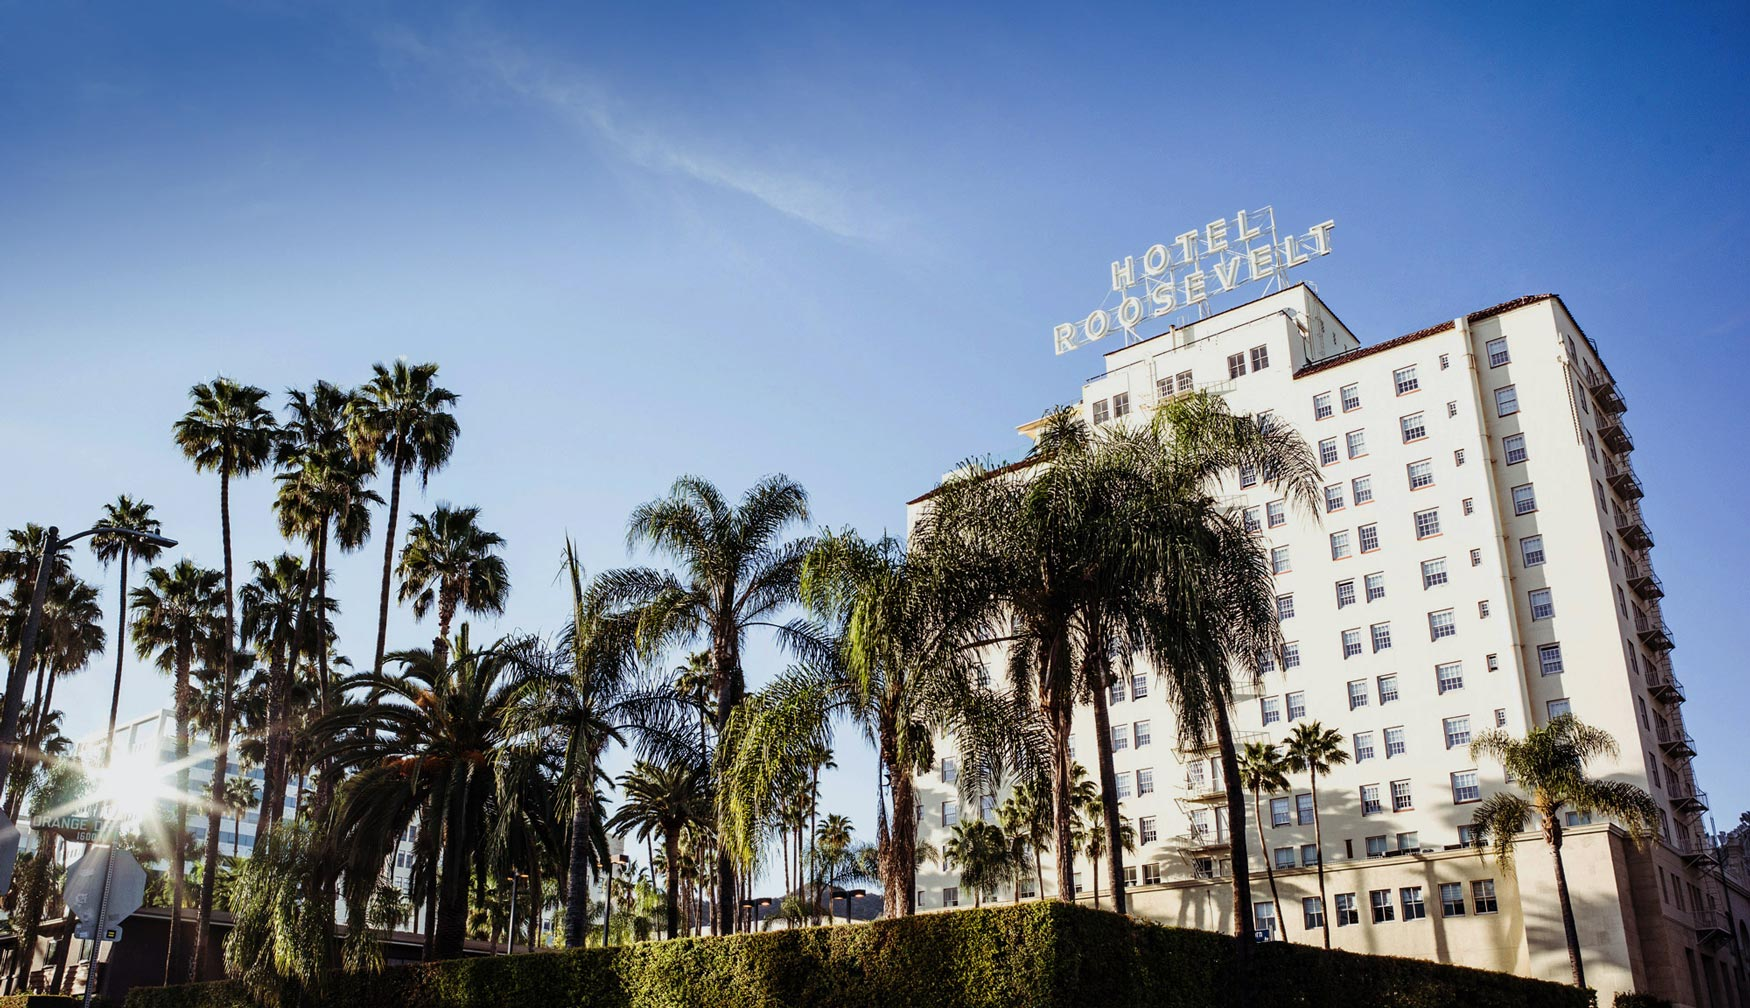 An exterior shot of the Hollywood Roosevelt